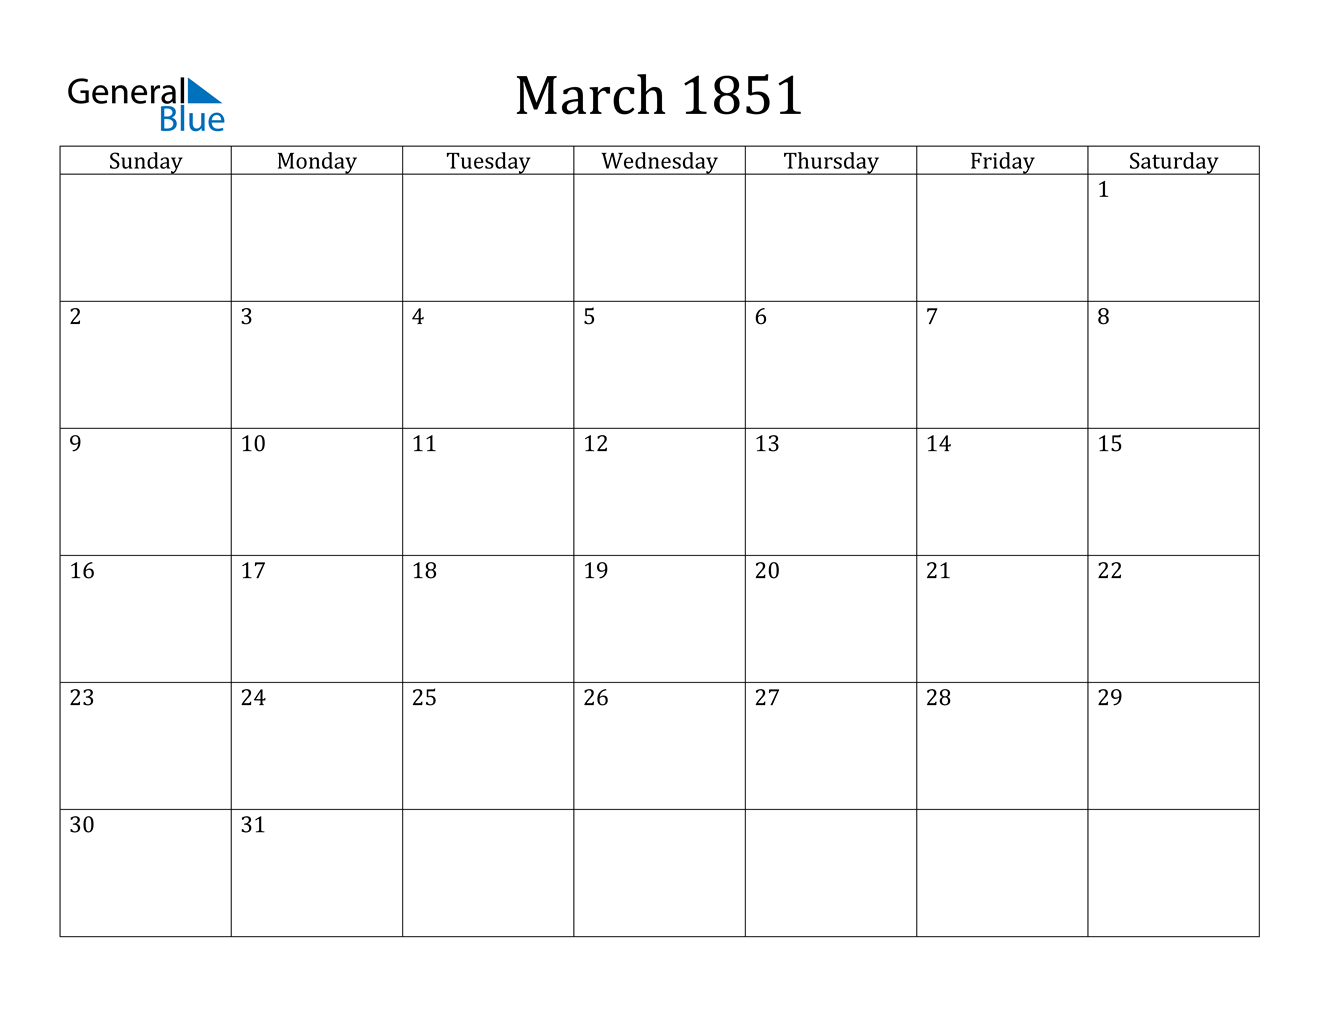 Image of March 1851 Calendar